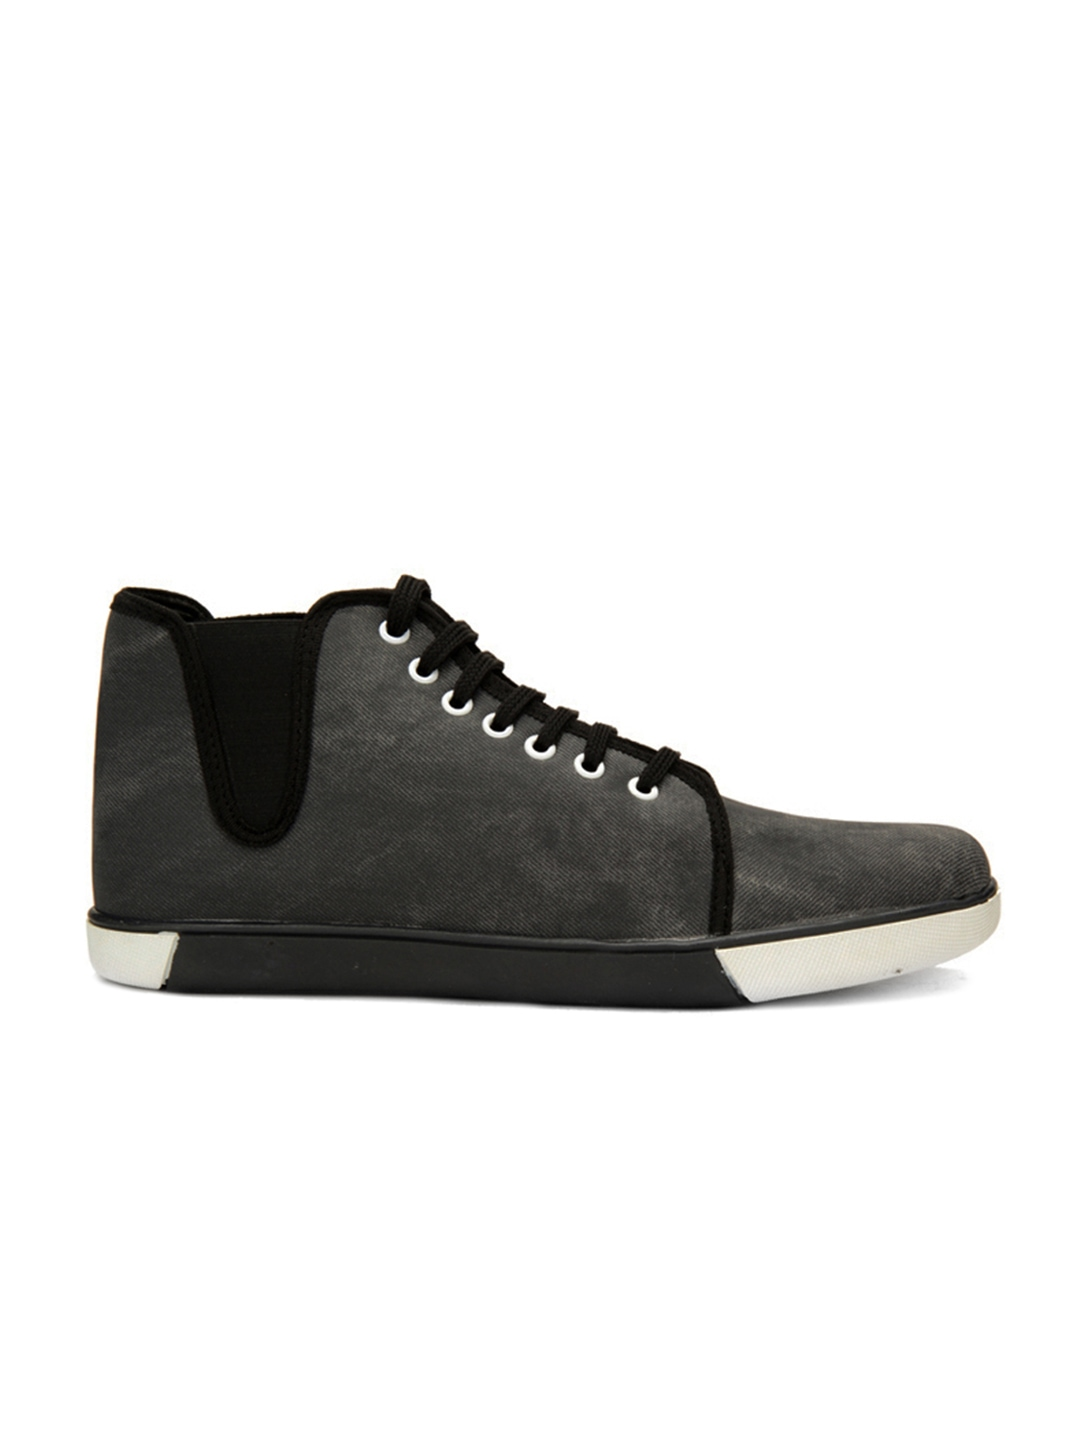 Bruno Manetti Shoes Online Shop